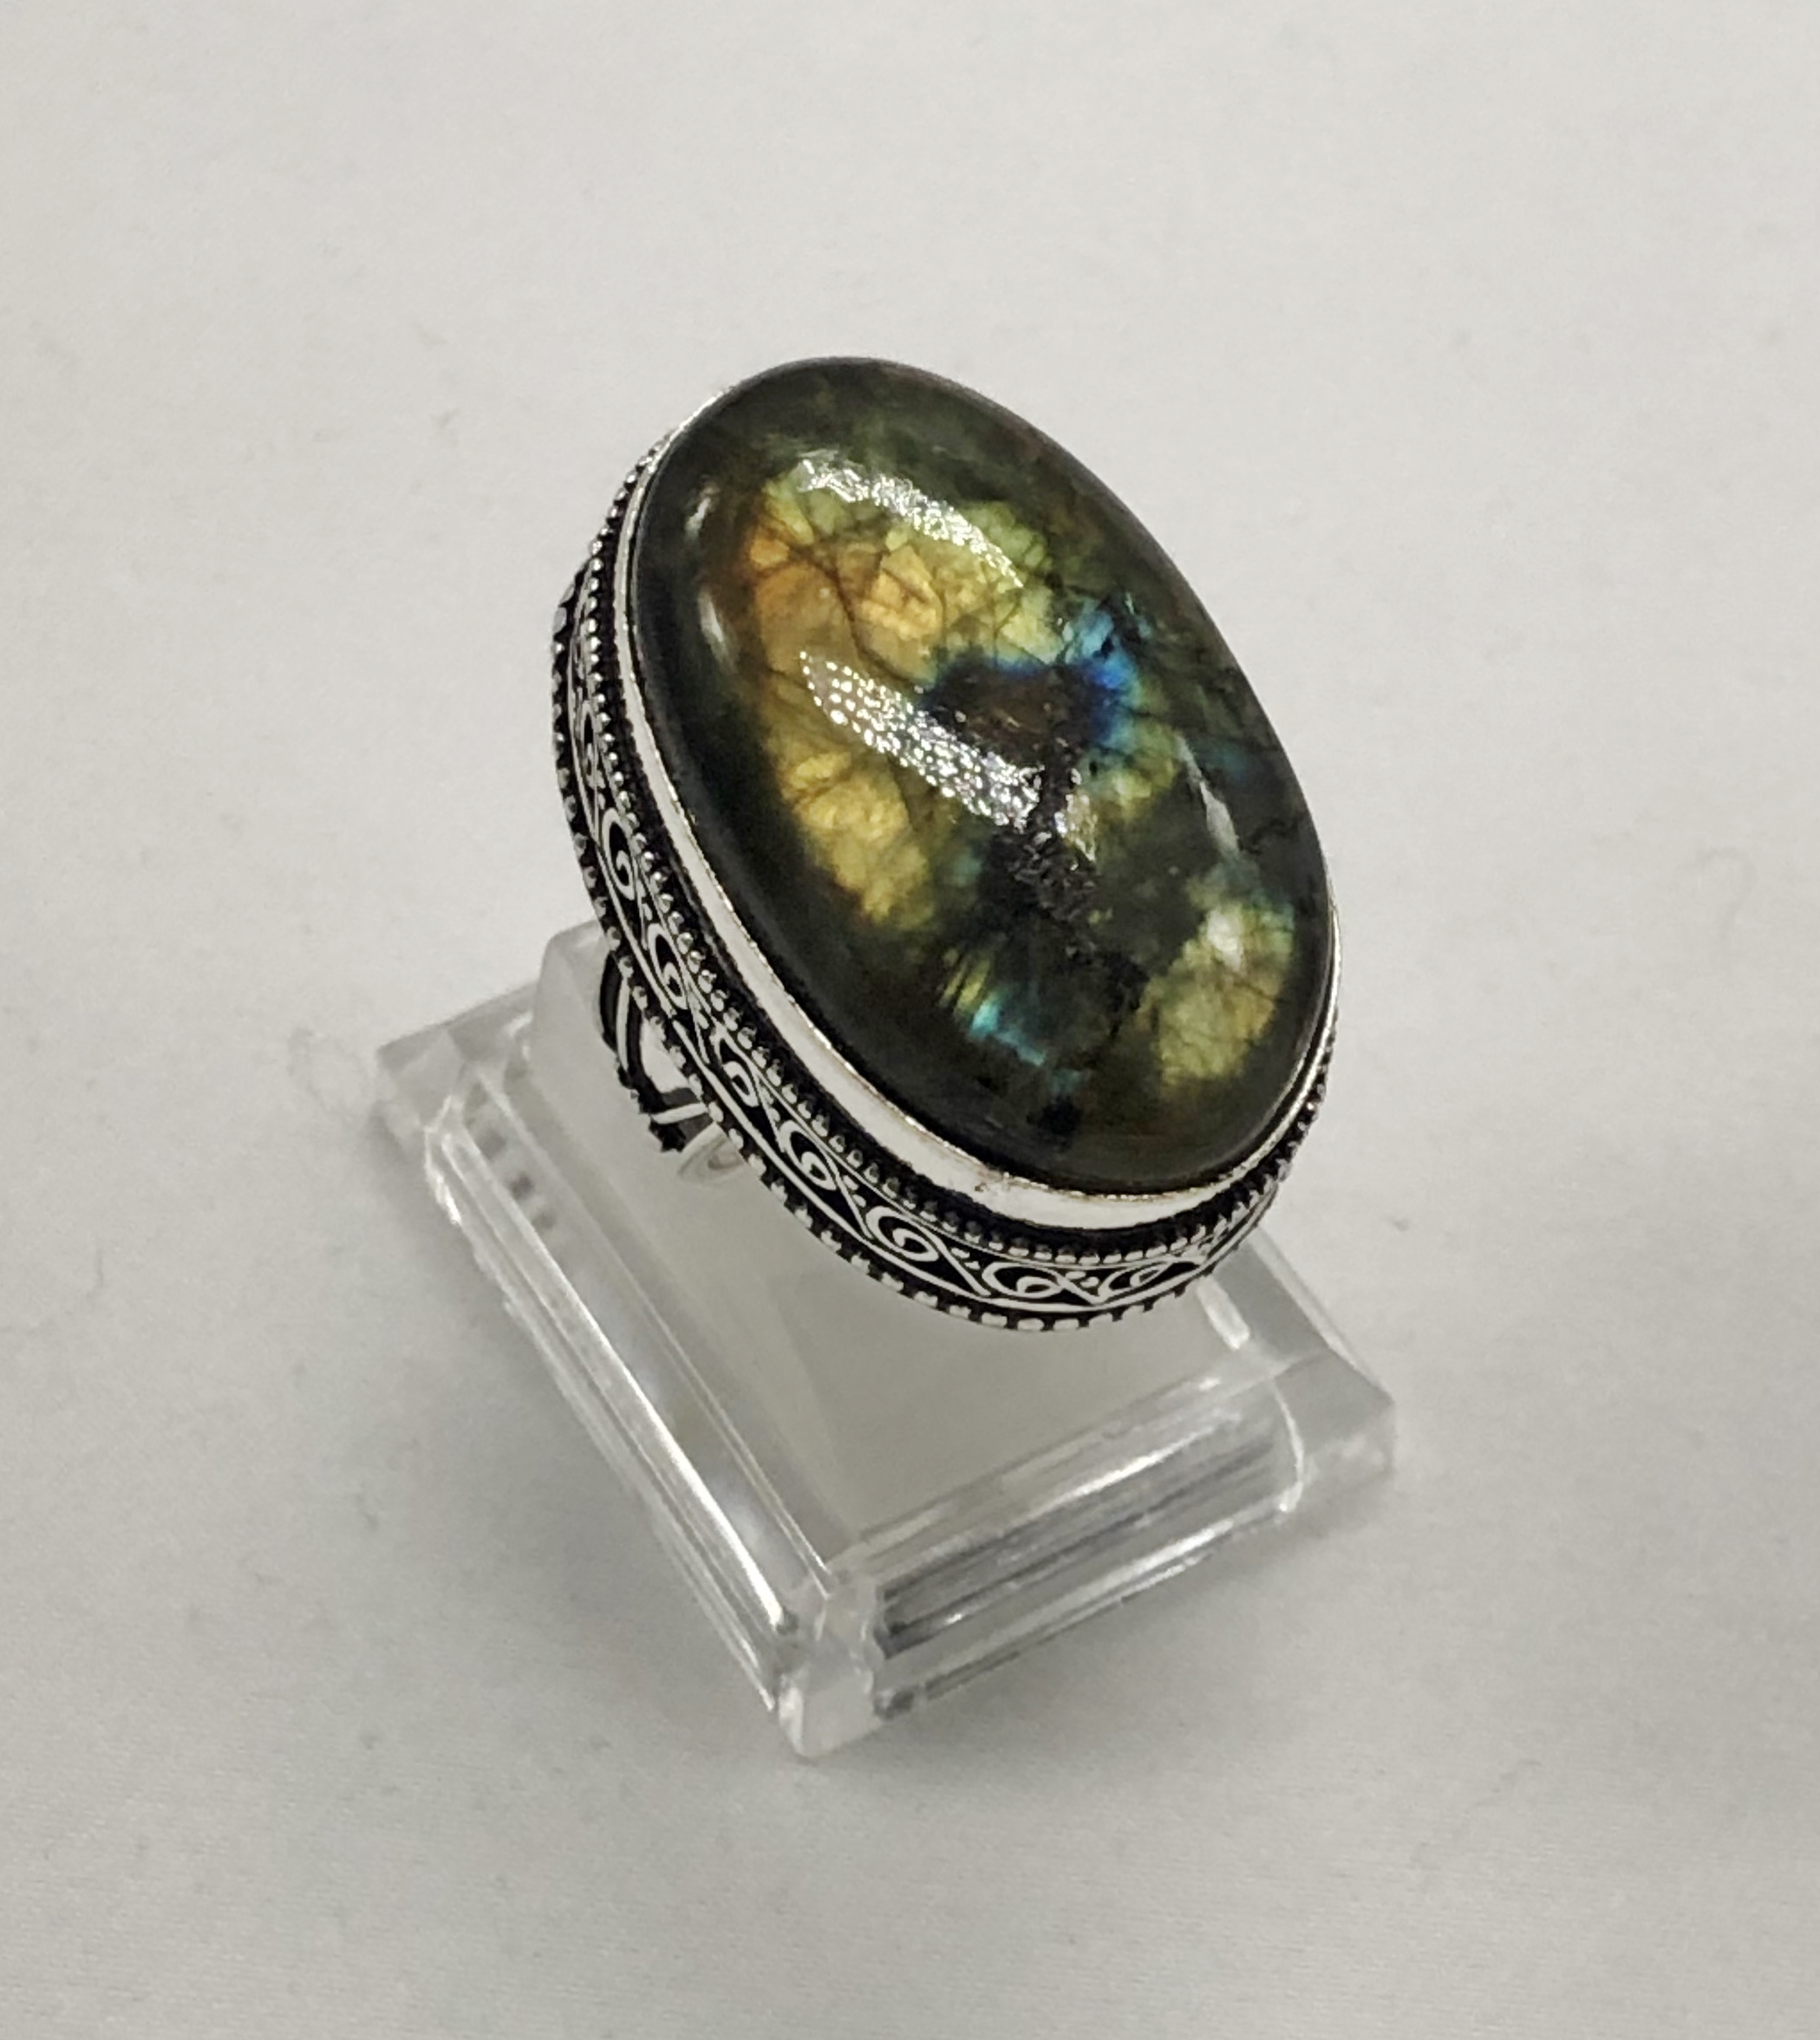 Bague labradorite ovale montage antique argent 925 - Angel shop